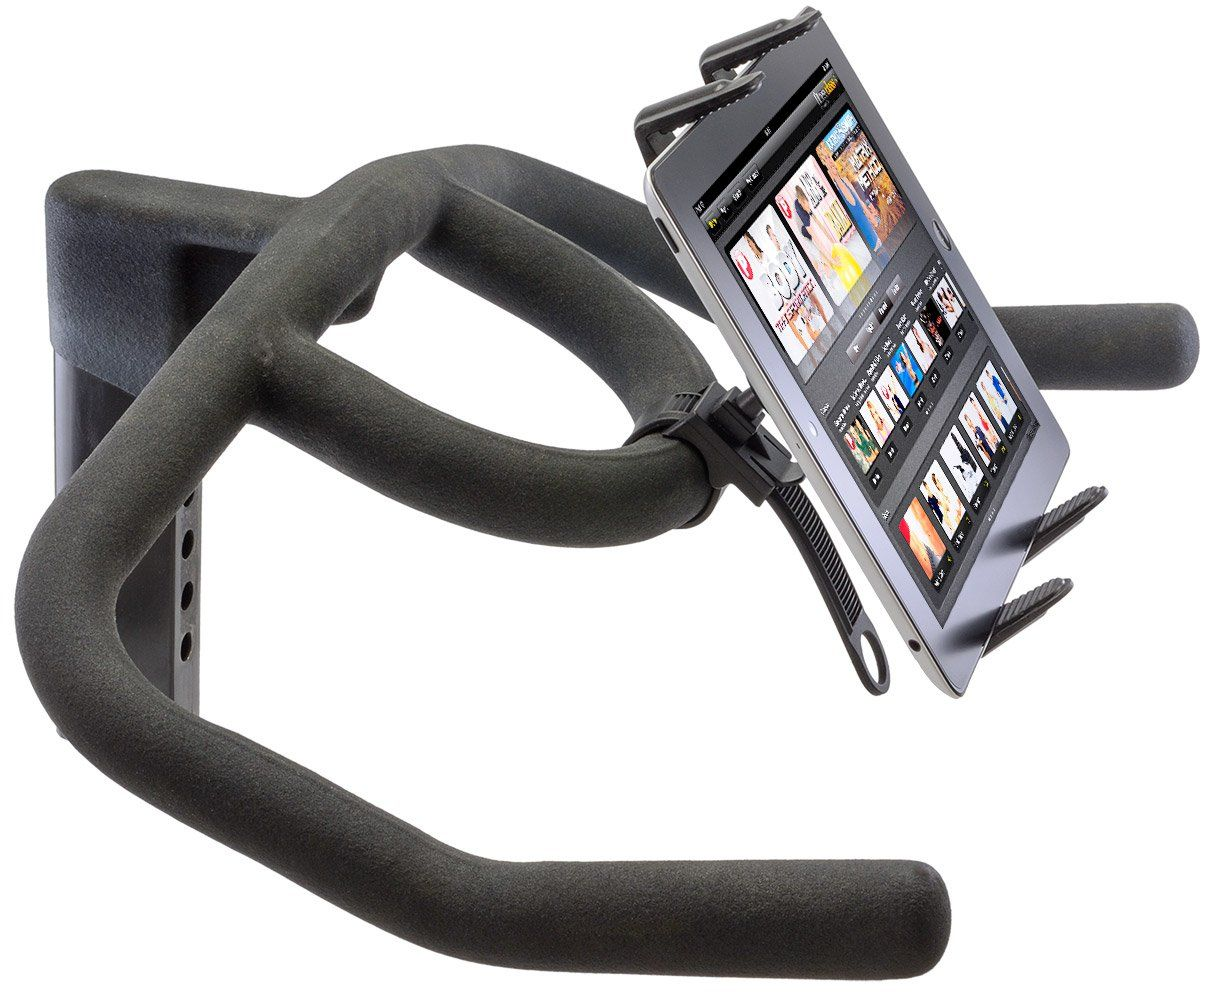 Chargercity straplock tablet mount for